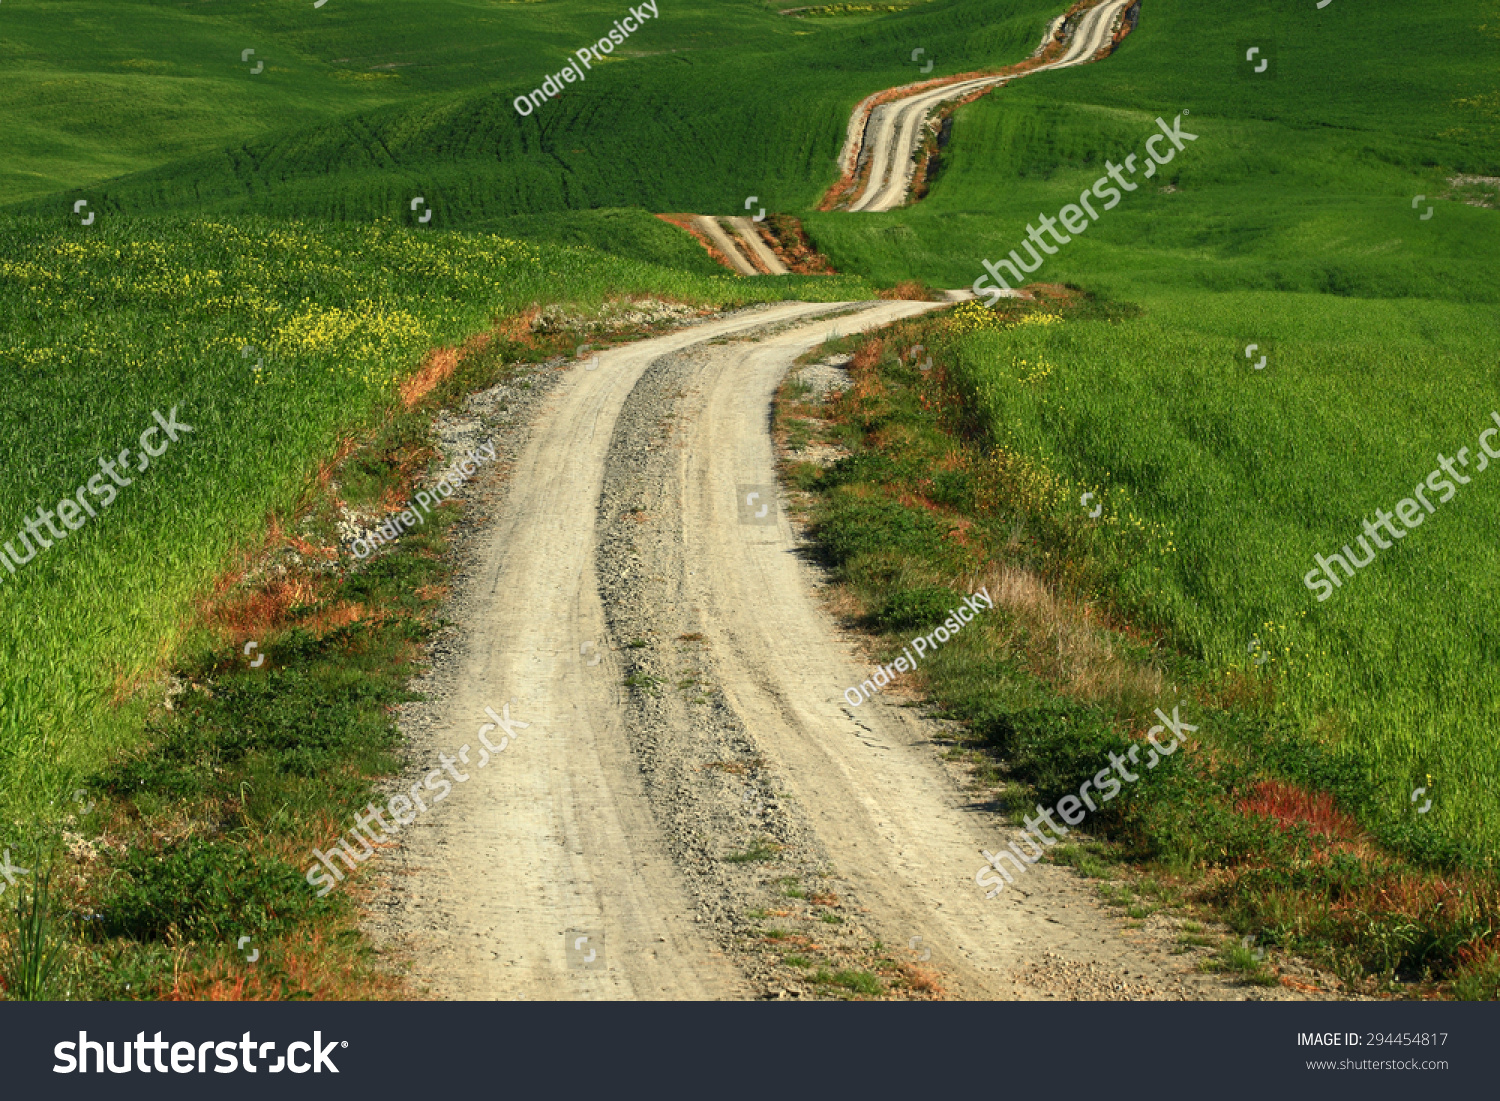 A Long And Winding Rural Path Crosses The Hills, Tuscany, Italy Stock Photo 294454817 : Shutterstock